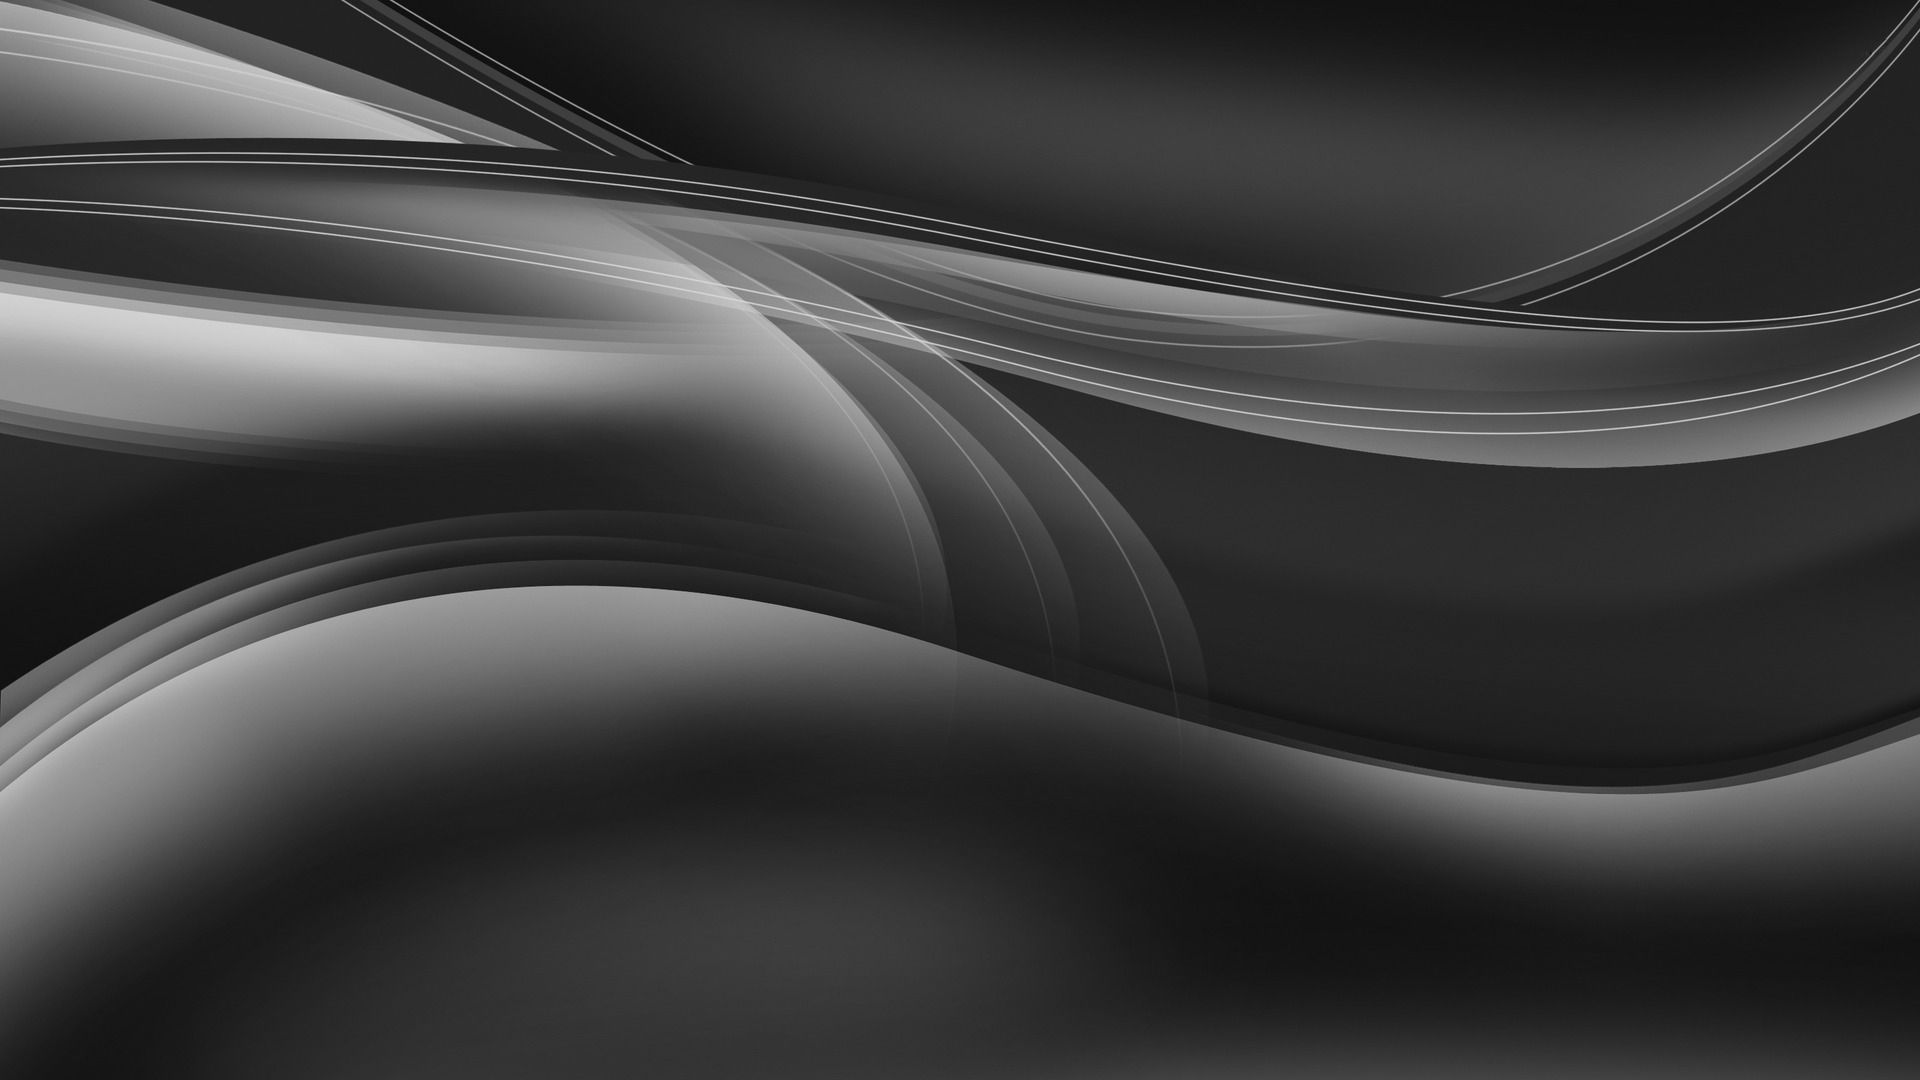 Black And Silver Wallpaper Collection Black And Silver Wallpaper Silver Wallpaper Abstract Wallpaper